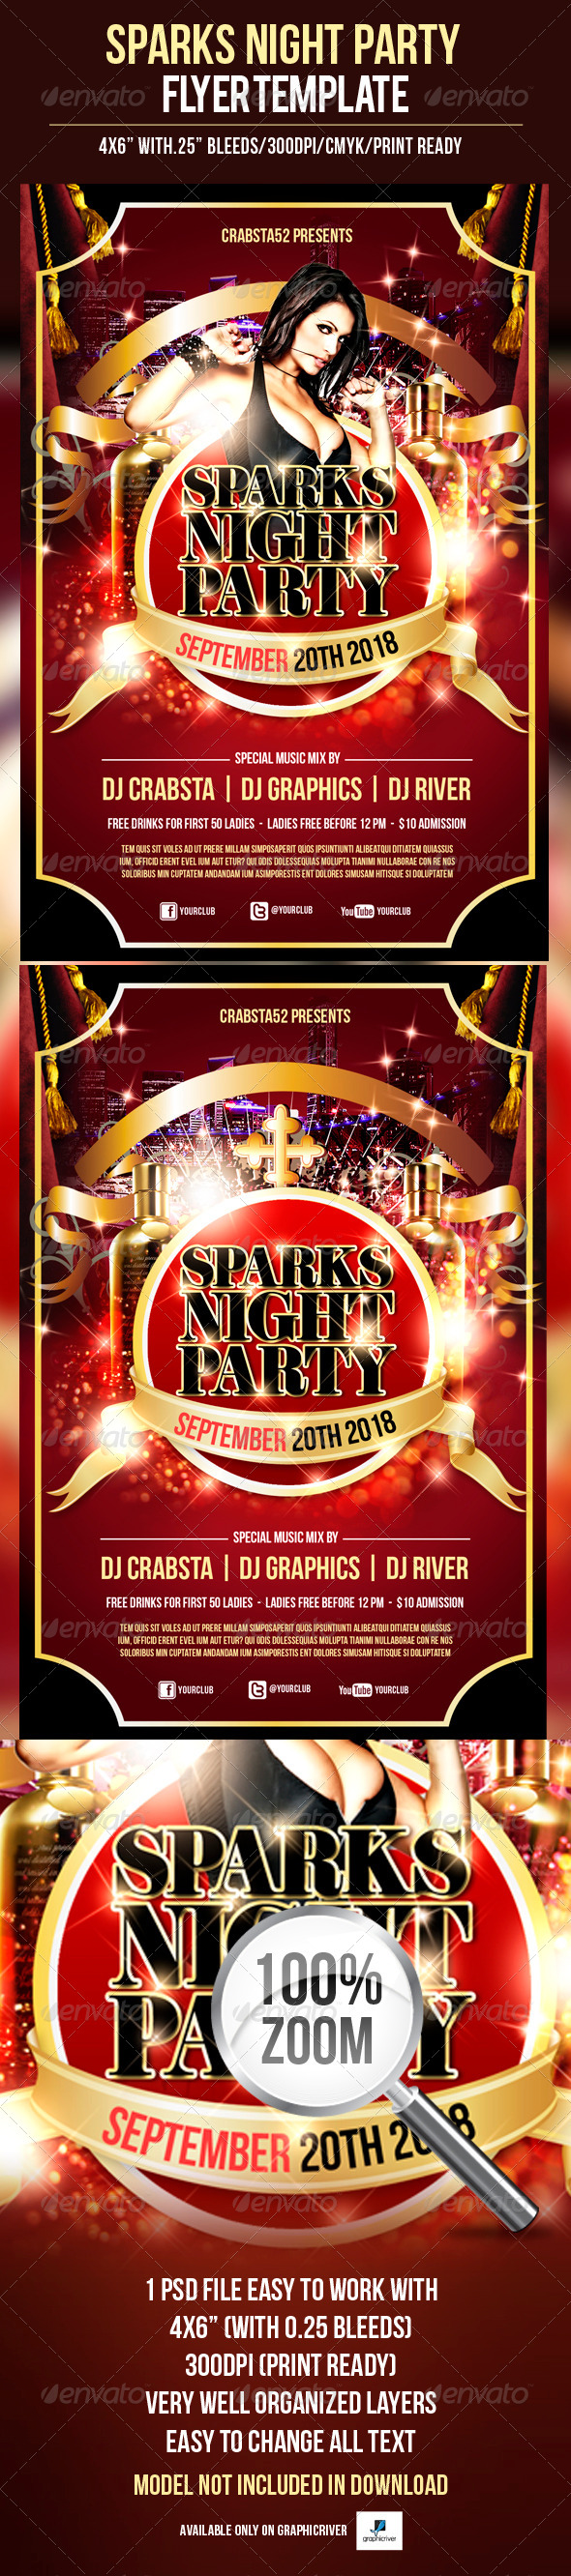 Sparks Night Party Flyer Template - Clubs & Parties Events